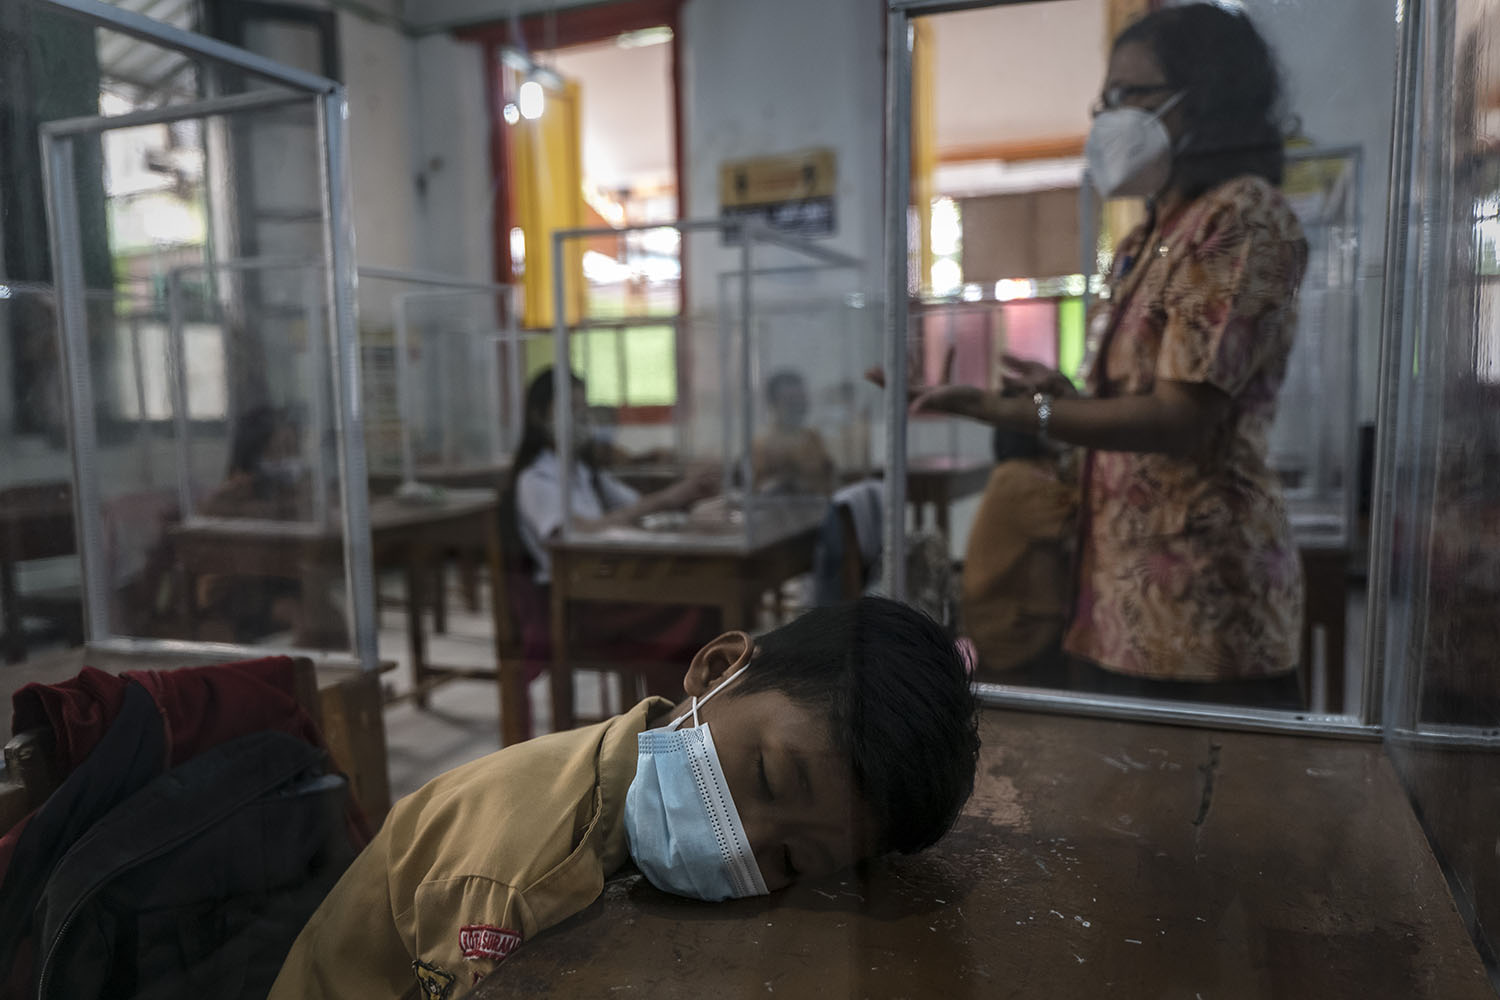 A student naps at a desk with plastic screens used for social distancing during a class at an elementary school in Solo City, Central Java, Indonesia, on Sept. 3. Ulet Ifansasti/Getty Images